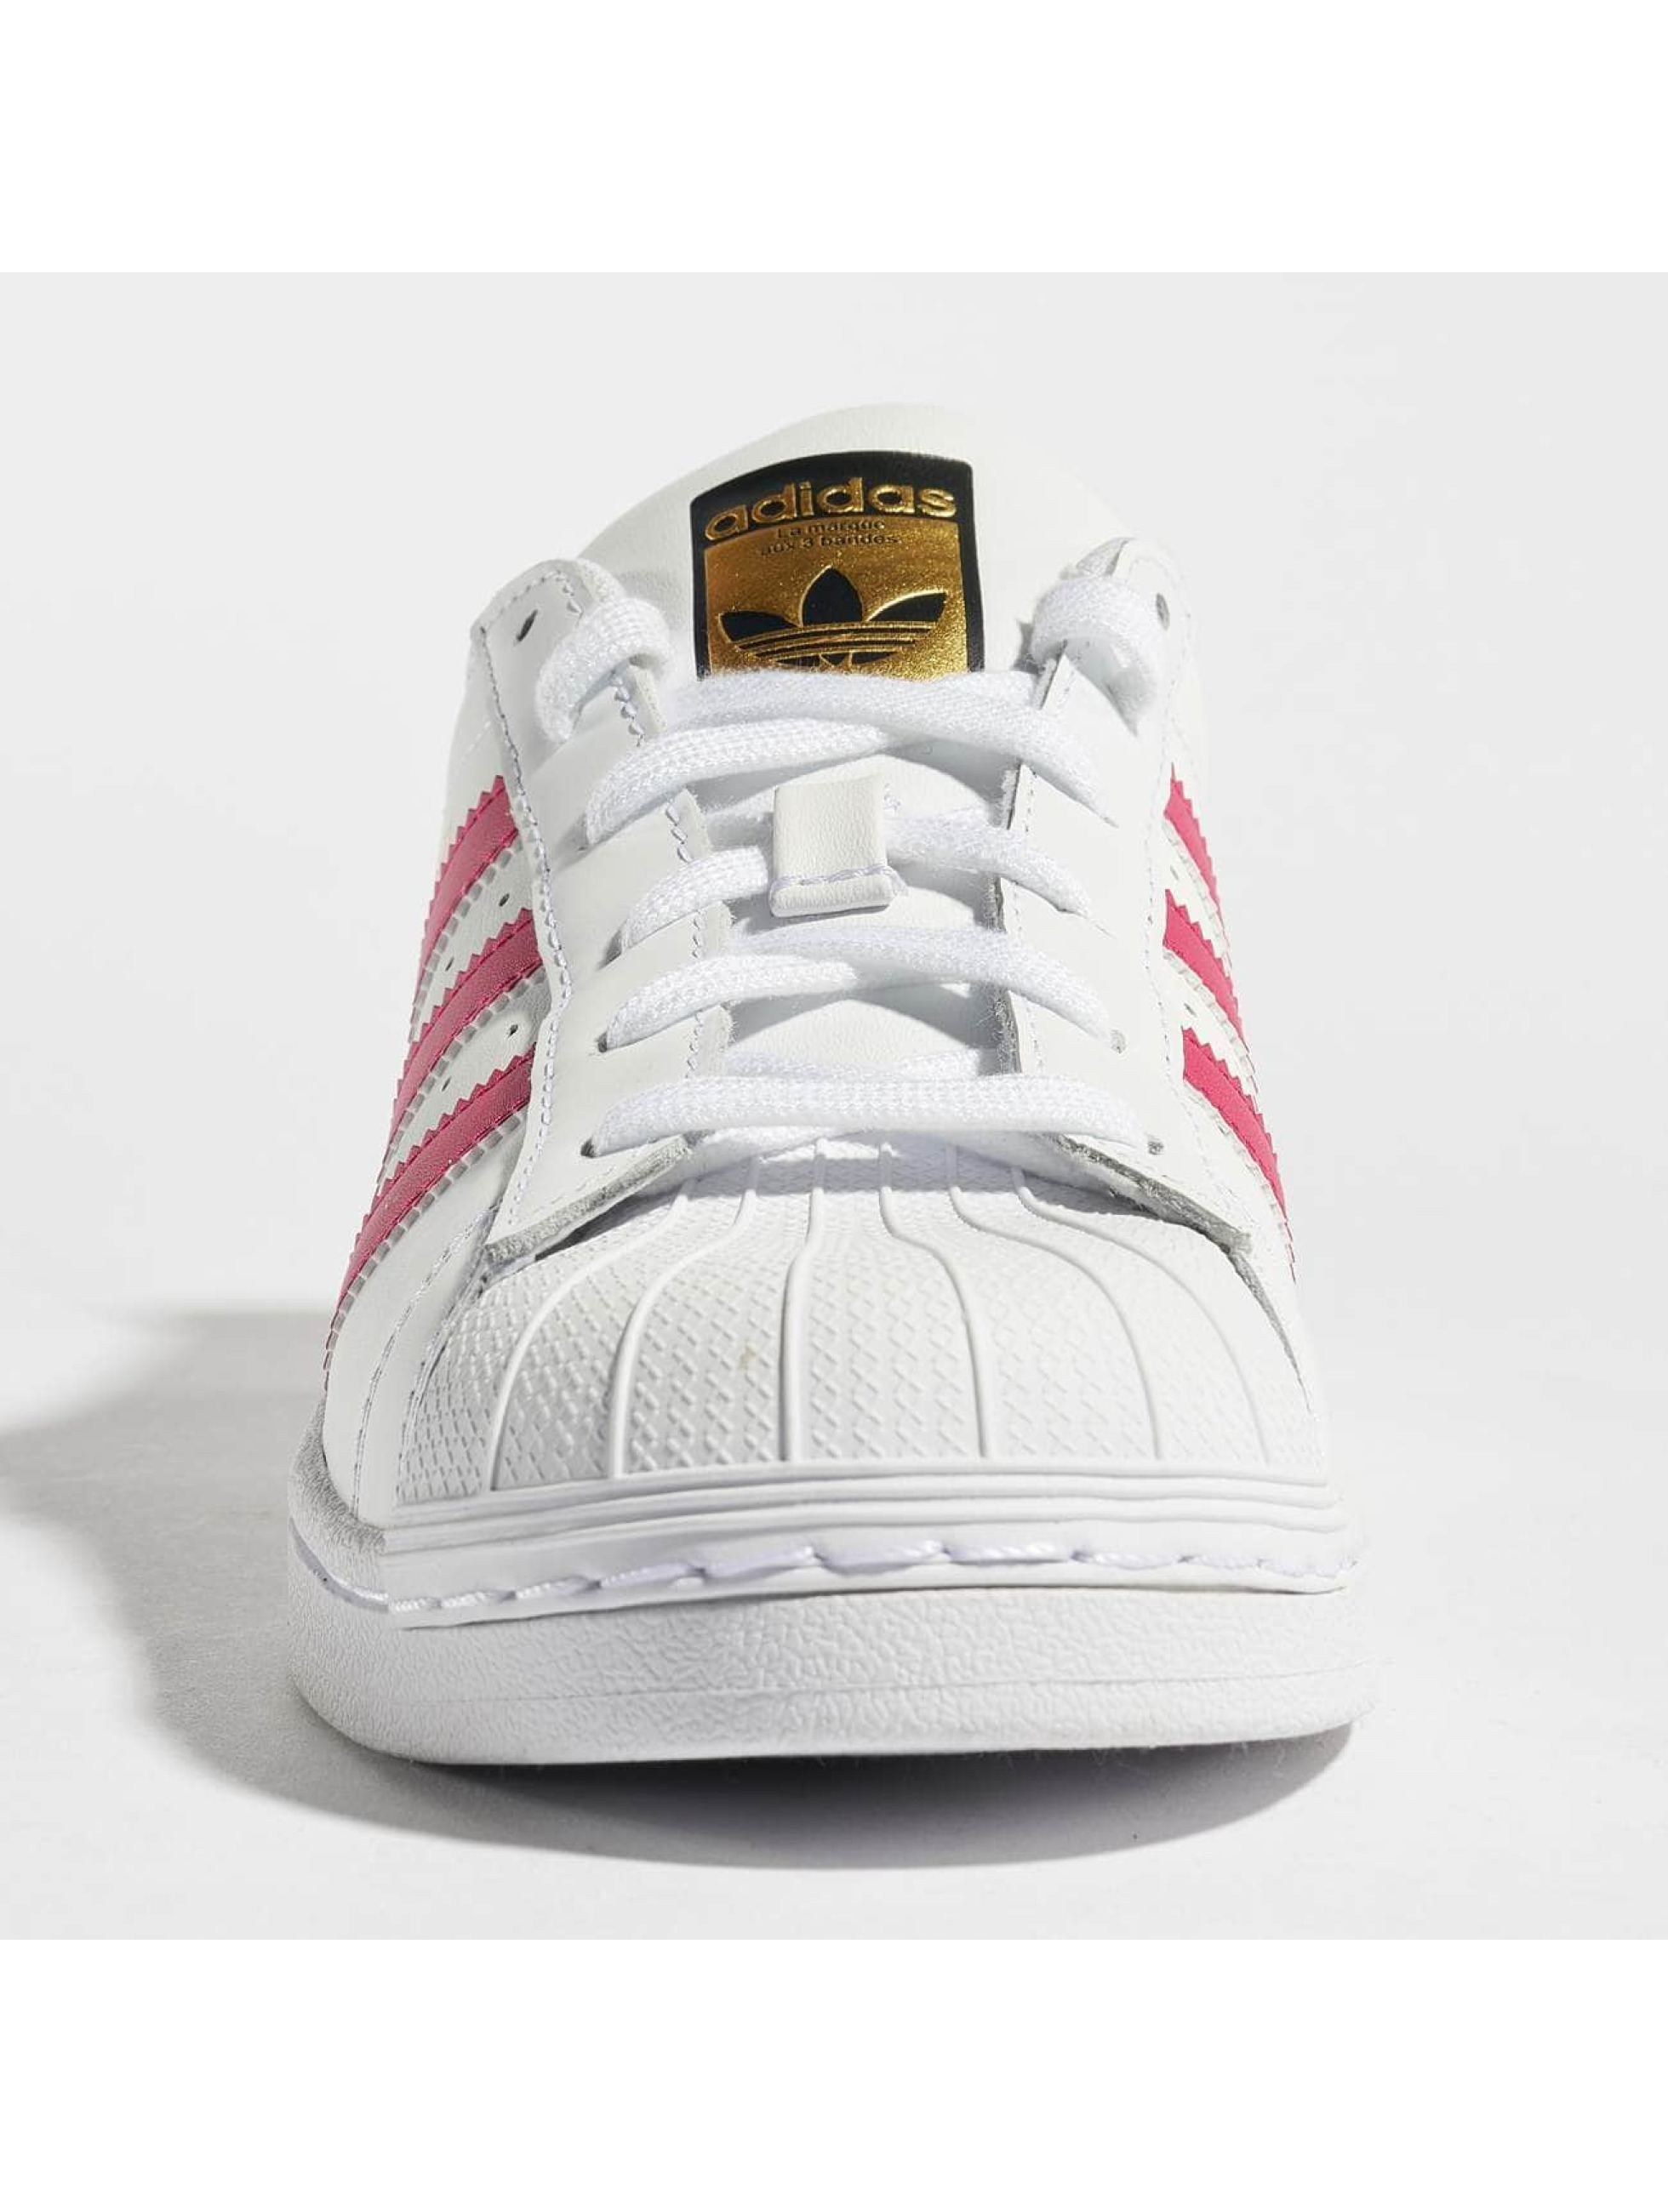 adidas originals Sneaker Superstar Founda weiß